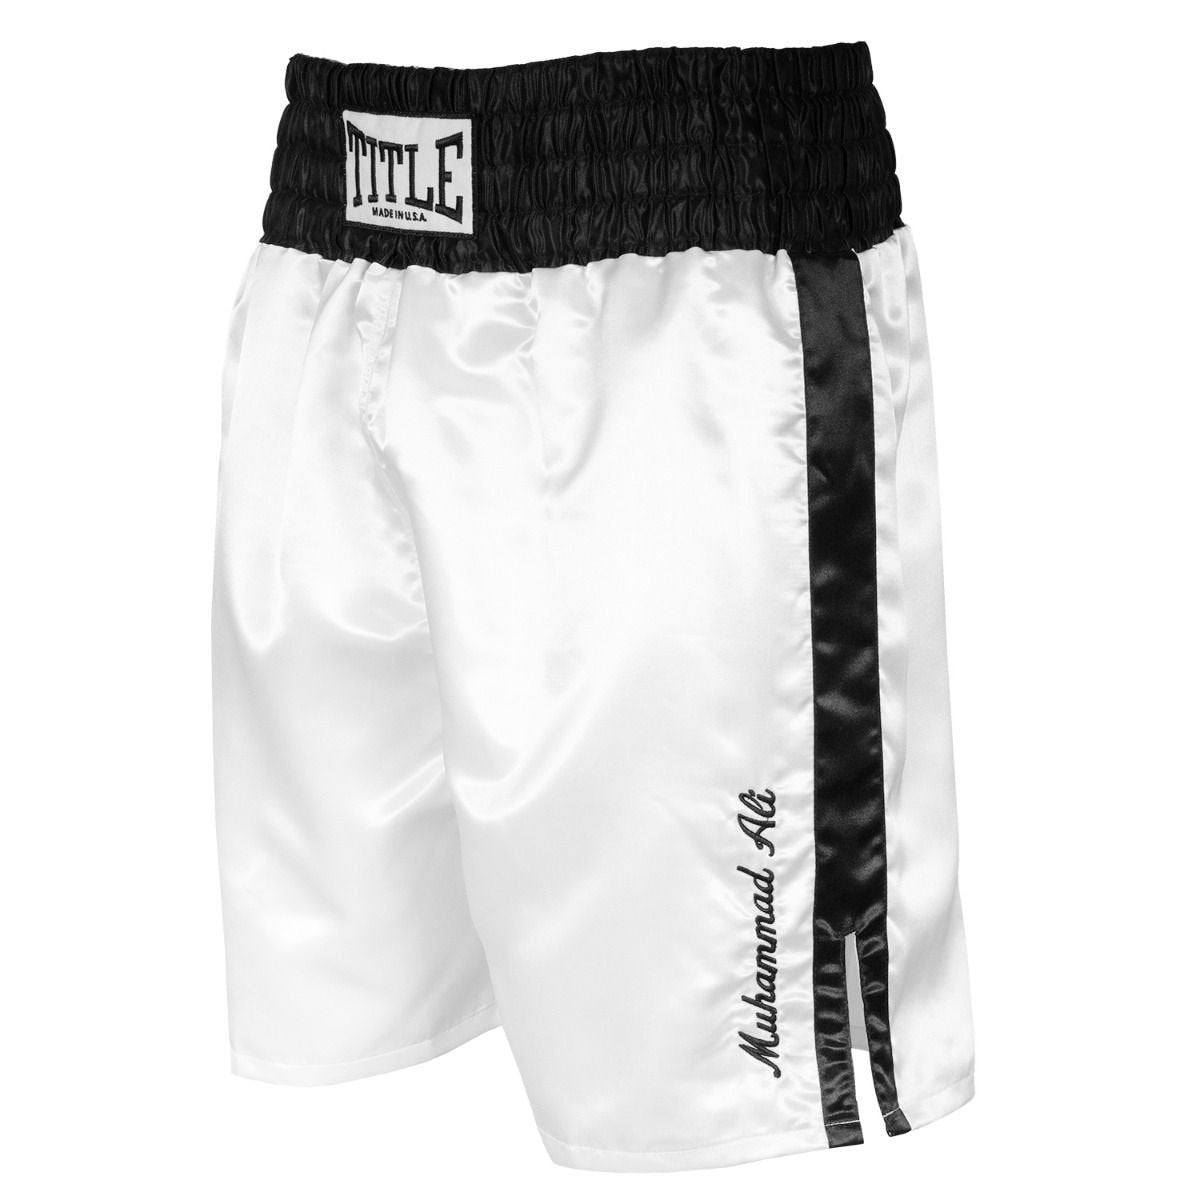 ALI BOXING SHORTS GREATEST IN THE 80'S WHITE/BLACK - MSM FIGHT SHOPTITLE BOXING